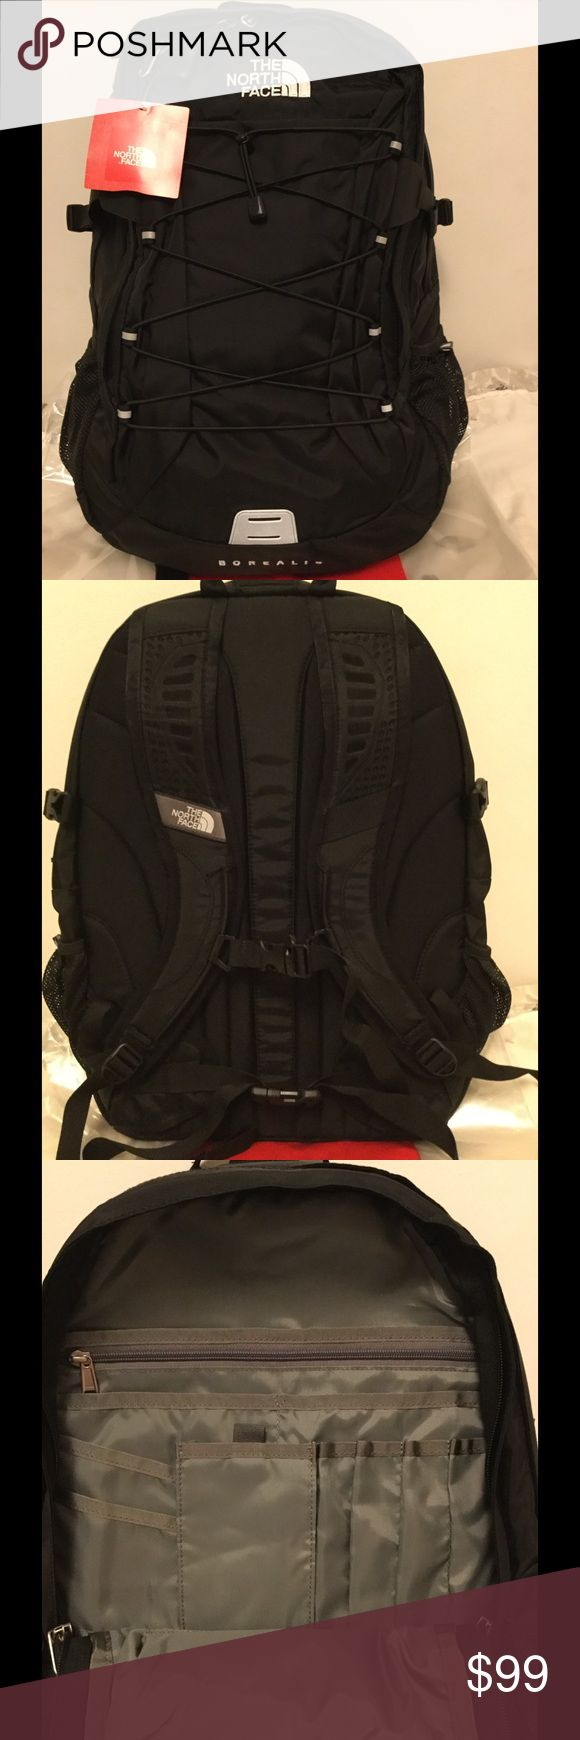 NEW The North Face Women's Borealis Backpack Brand new Women's Borealis backpack in Black color, contains laptop and tablet sleeves, with additional compartments in a separate pocket.  Price is firm. No trade. The North Face Bags Backpacks